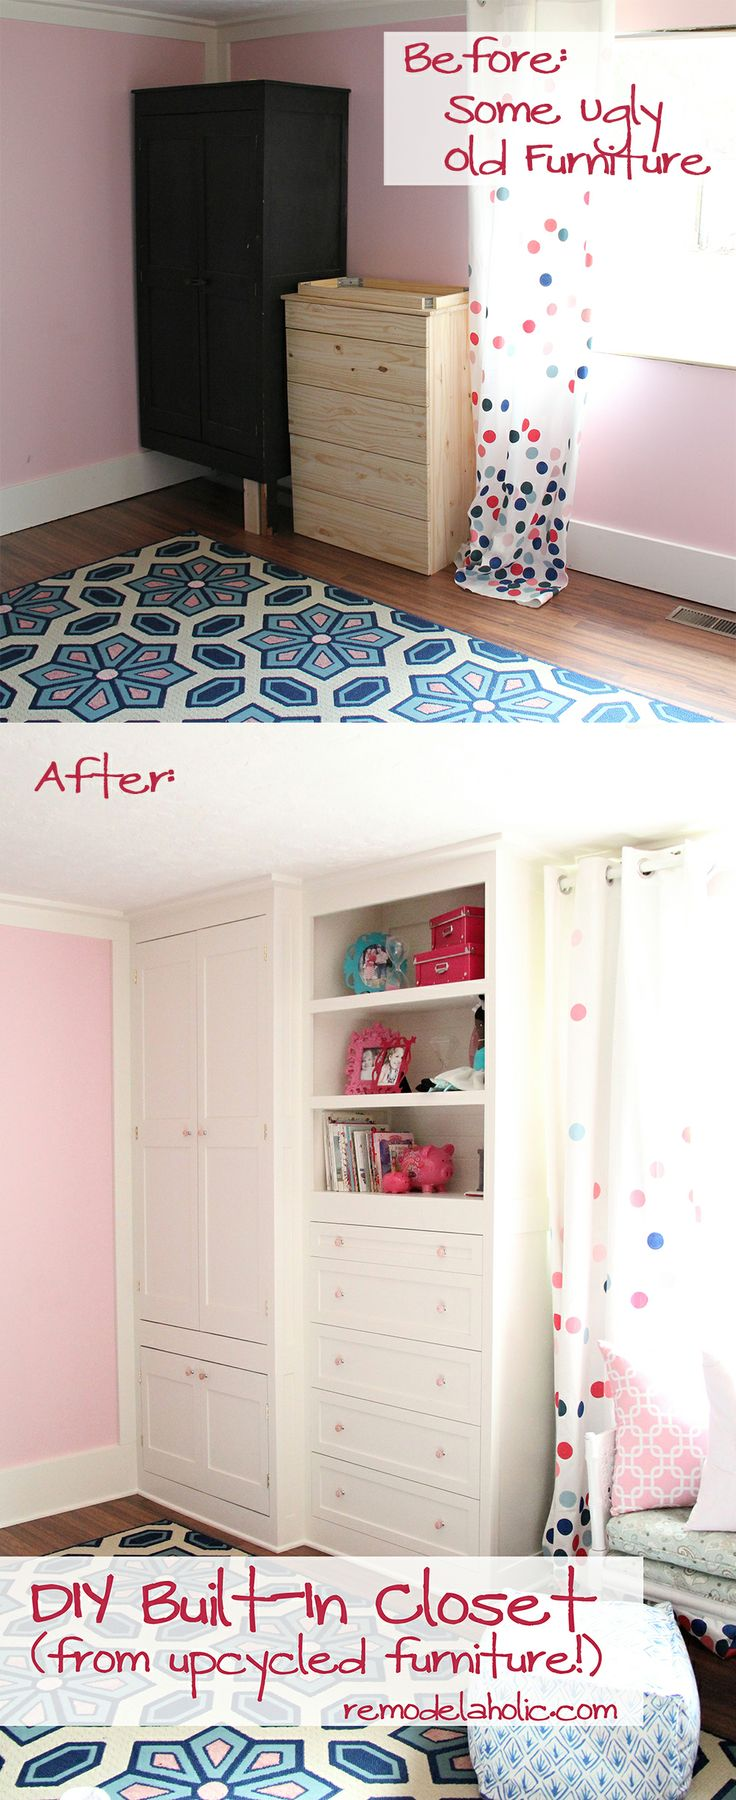 From old furniture to built in closet